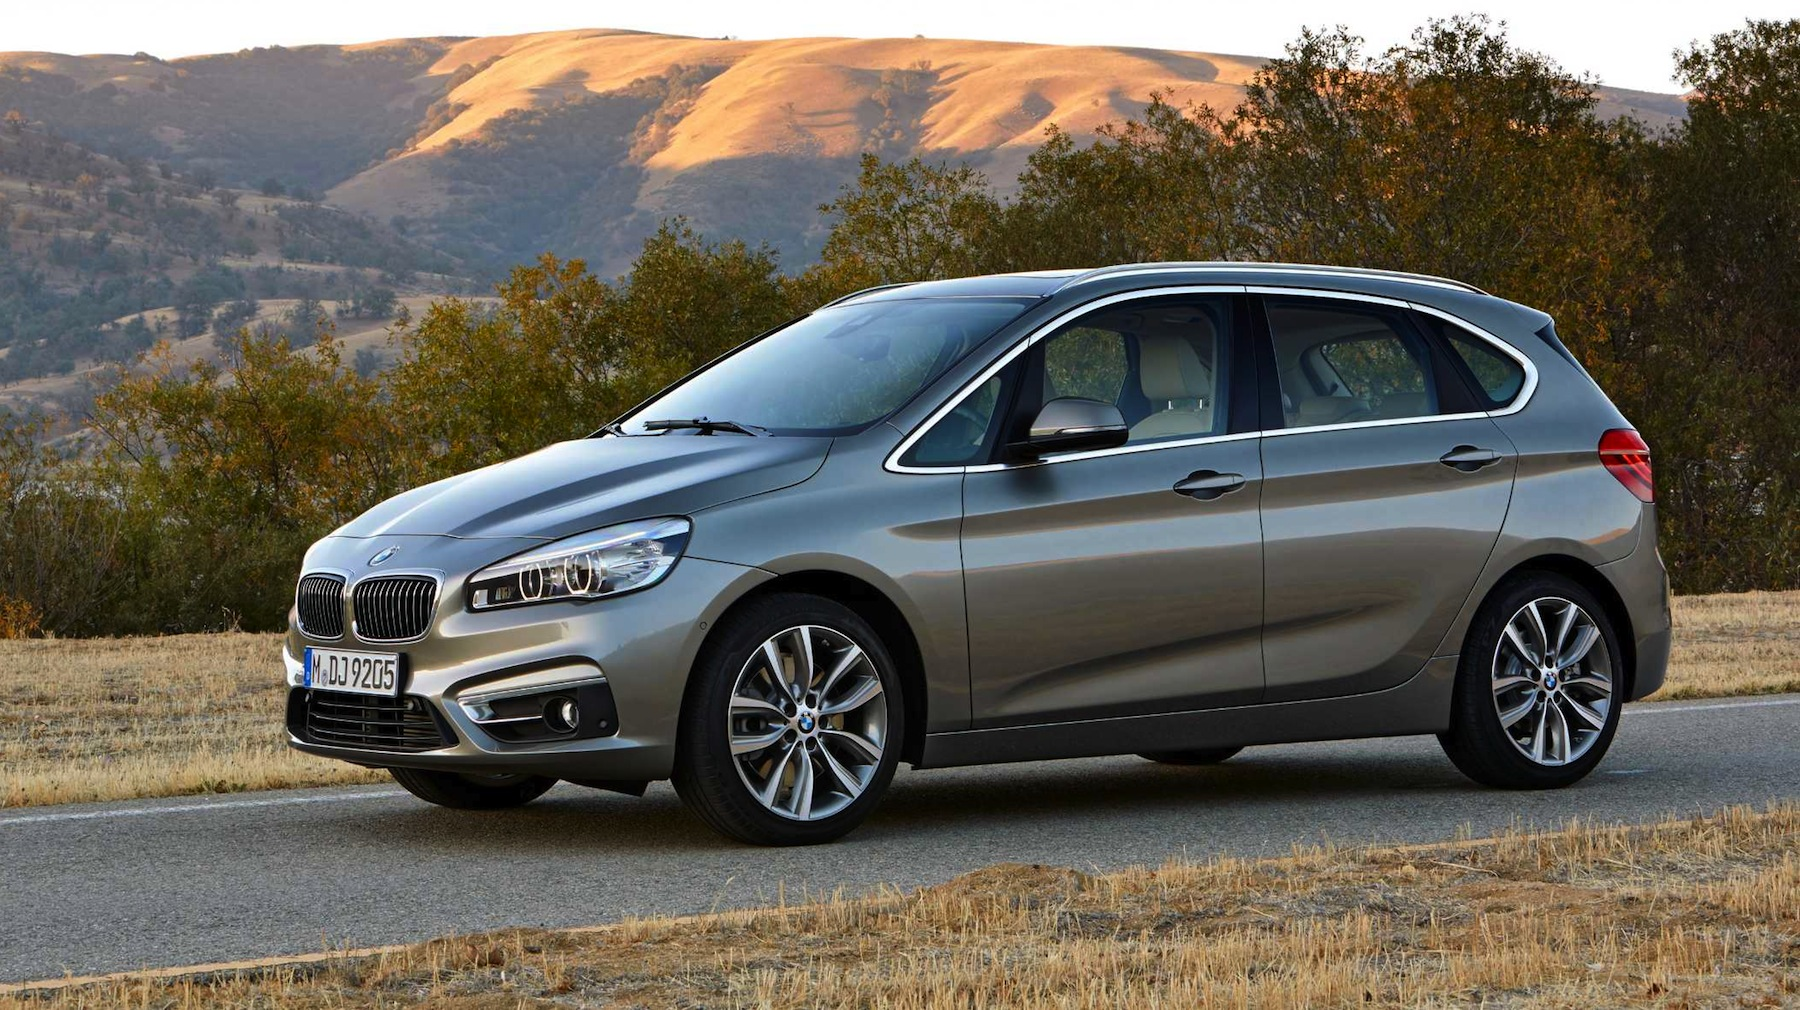 Bmw 2 Series Active Tourer Front Wheel Drive Luxury